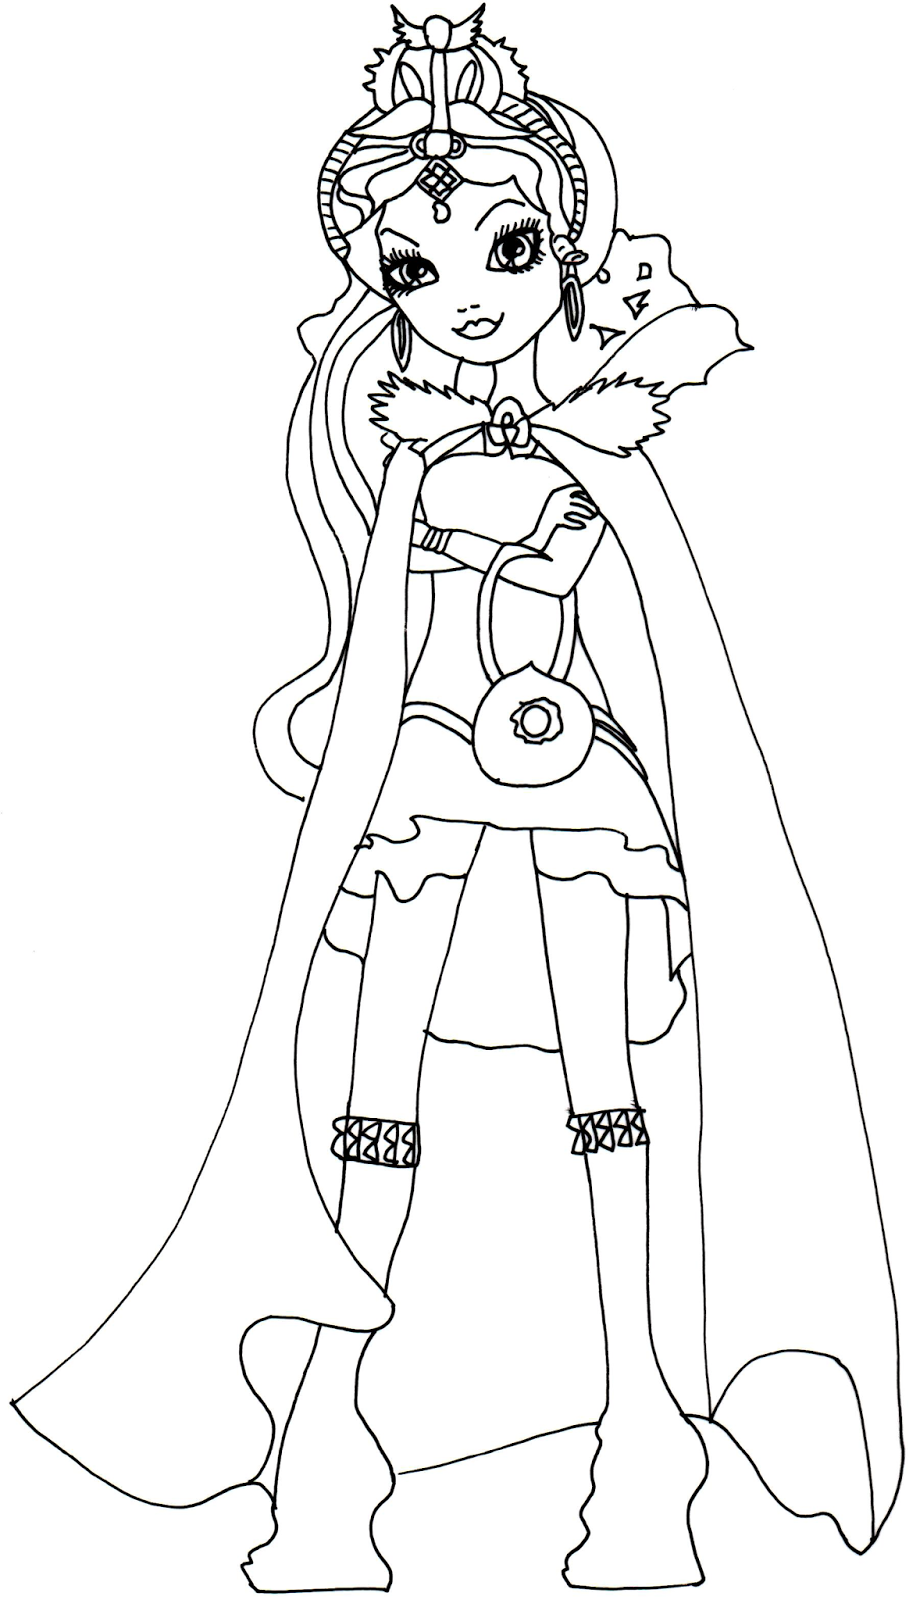 Free Printable Ever After High Coloring Pages December 2013